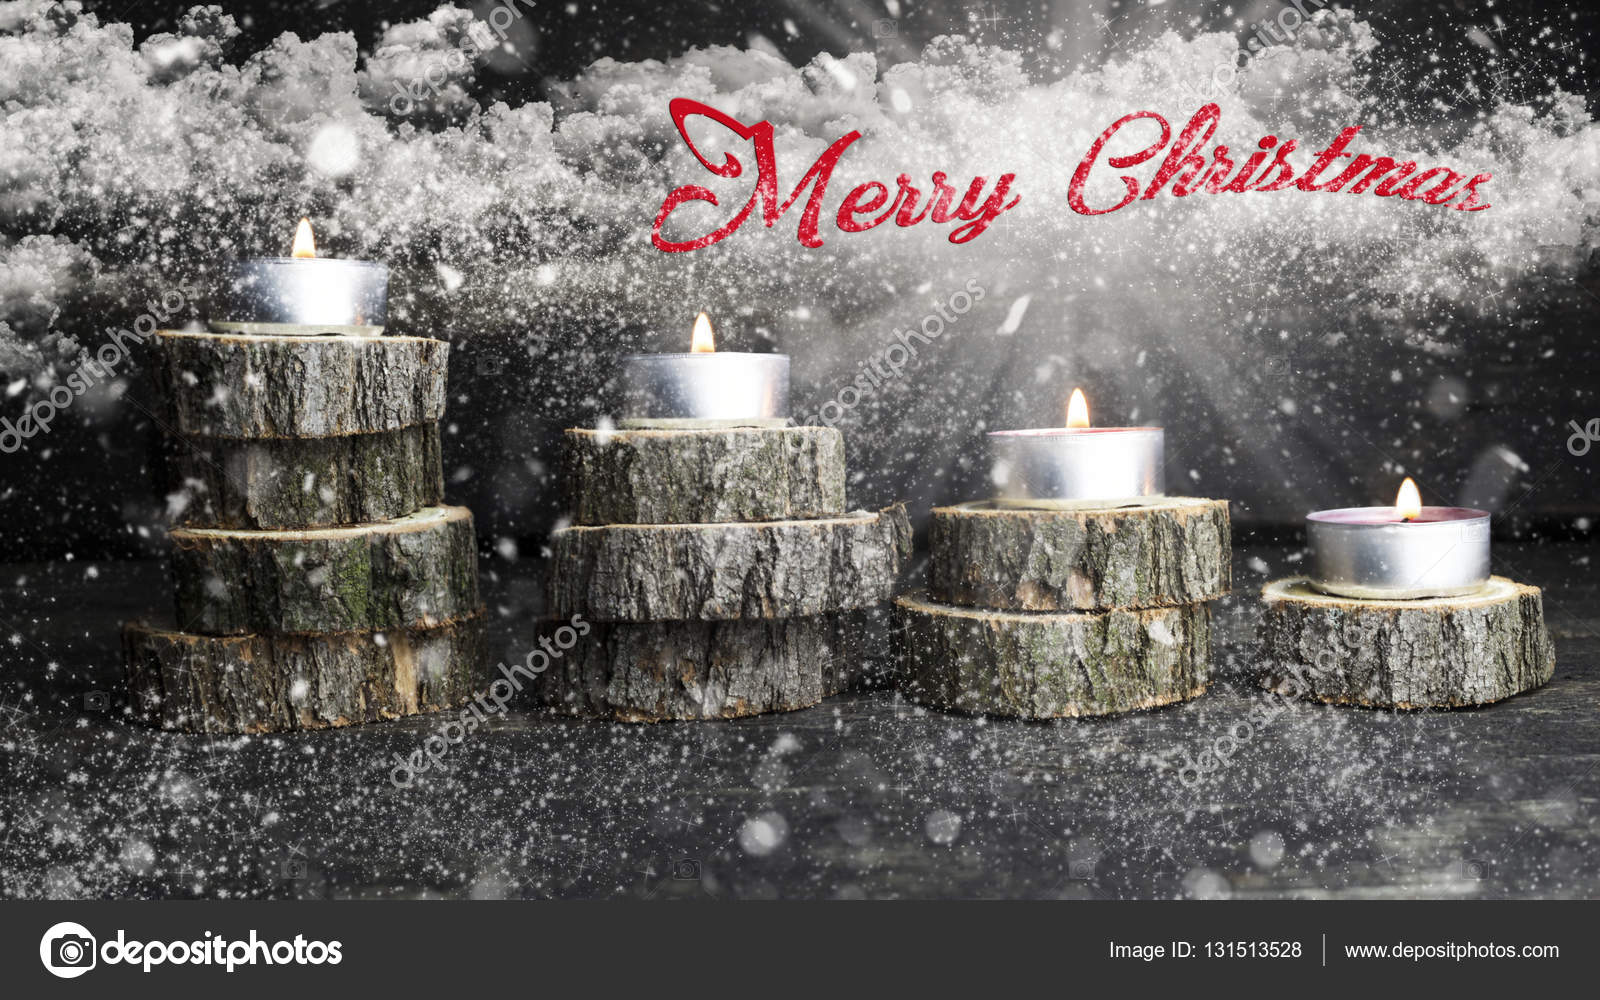 Merry Christmas Candles Burning Decoration On Wooden Logs Resting Rustic Background